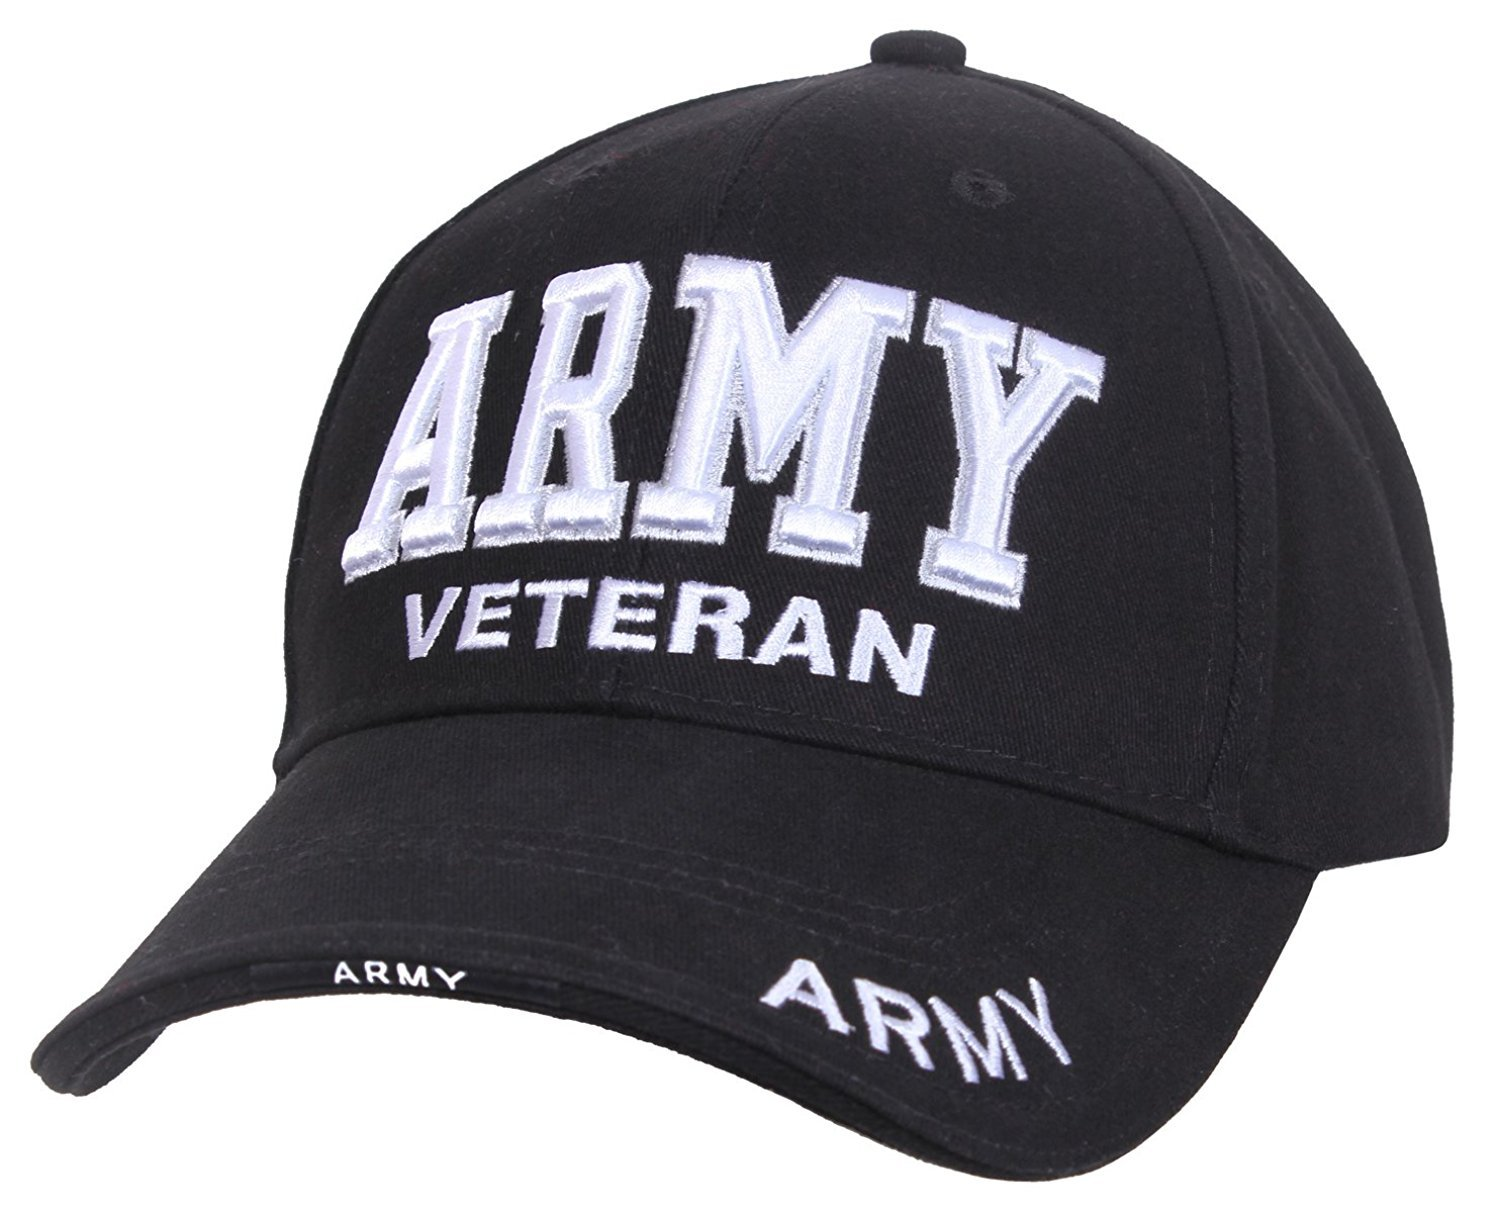 Rothco Deluxe Army Veteran Low Profile Cap - Black